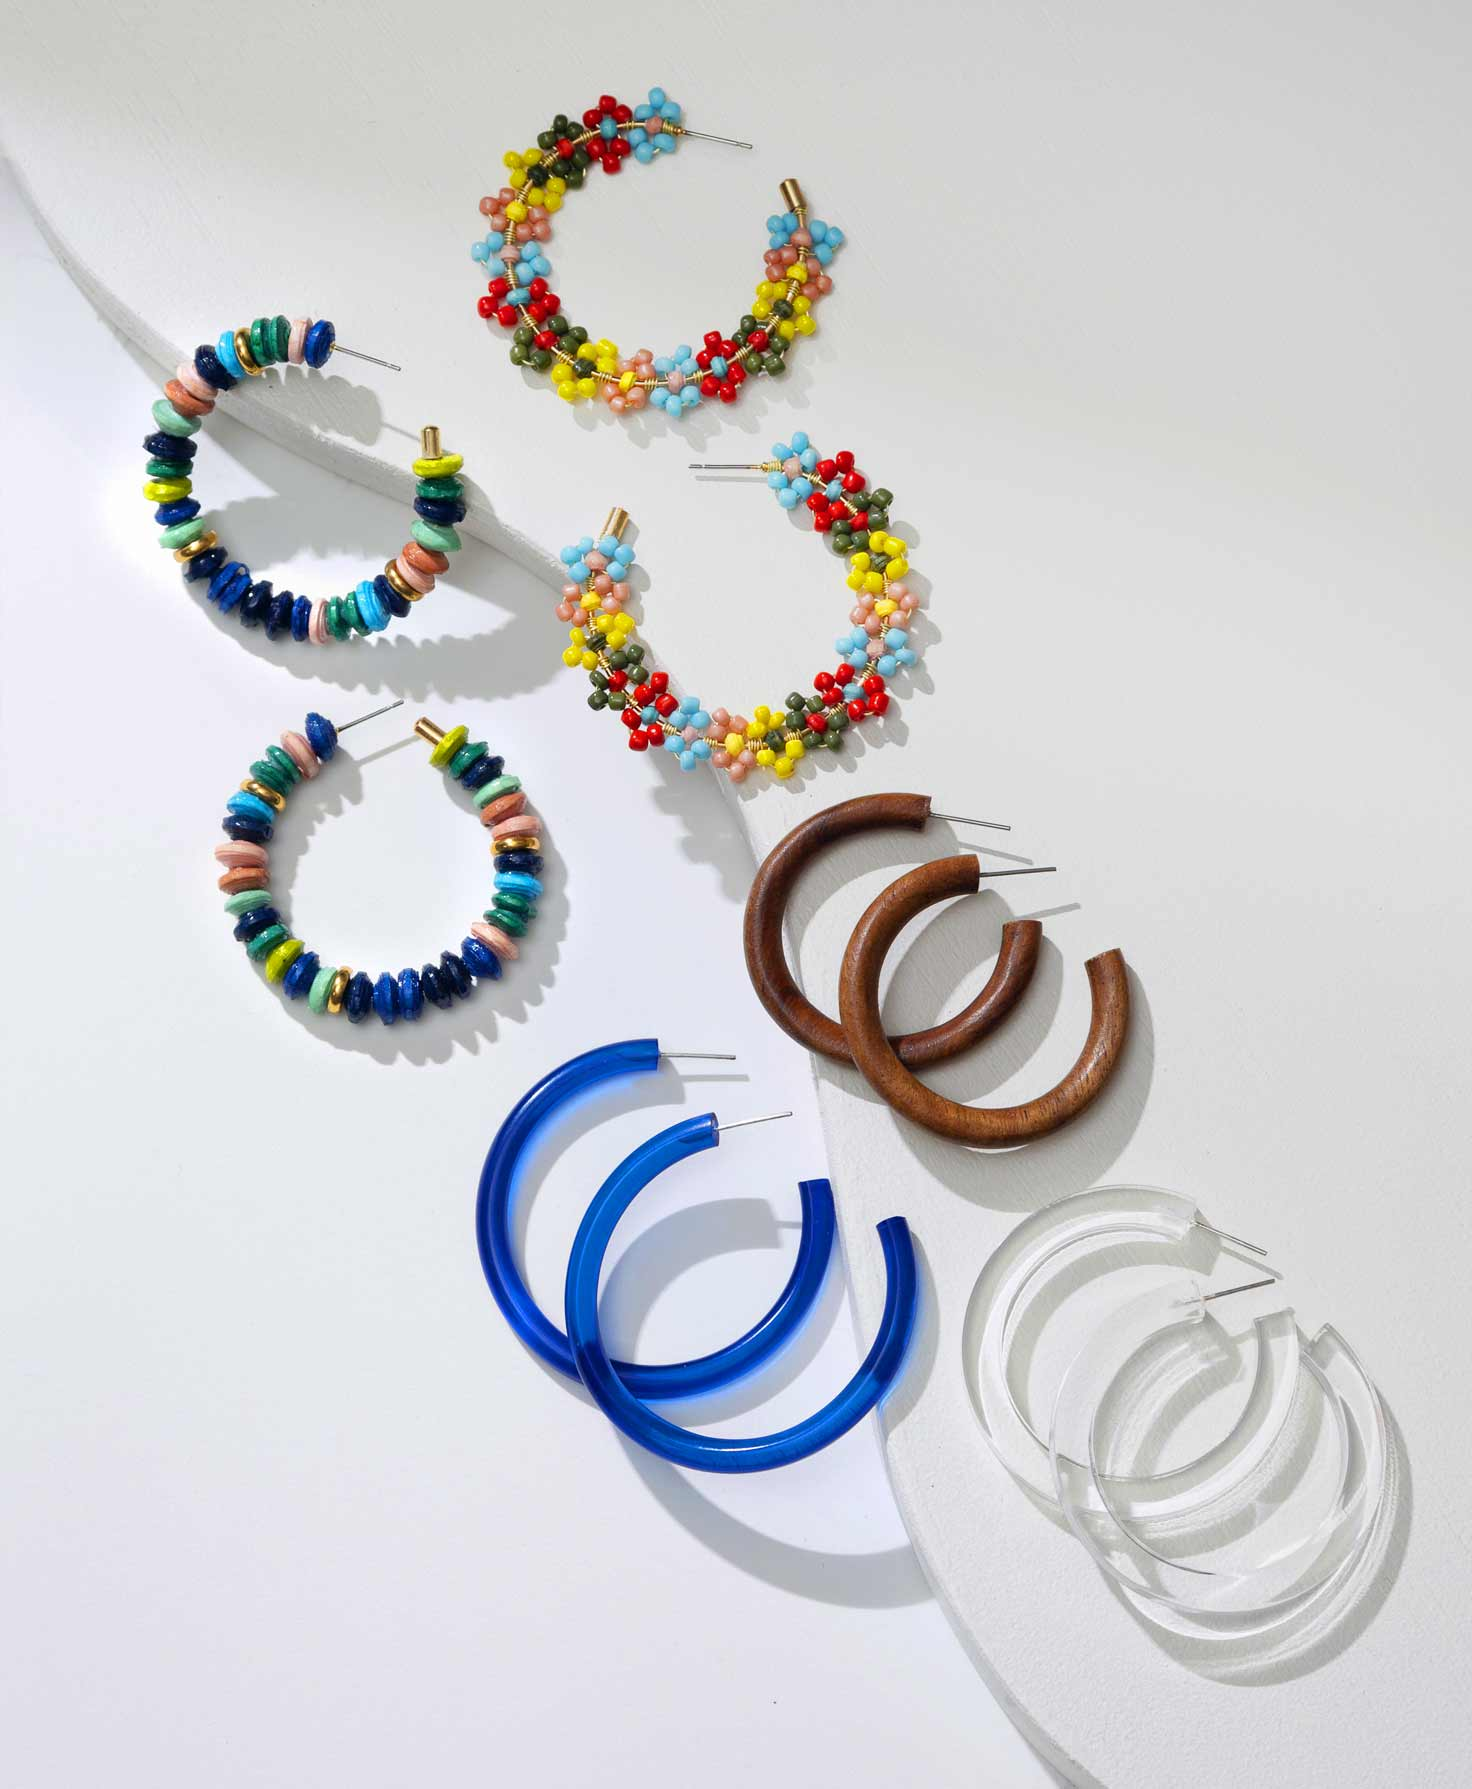 An Artisan's hands are shown assembling bright beads to make the Lantana Hoops. An array of different colored beads lay on the table below.